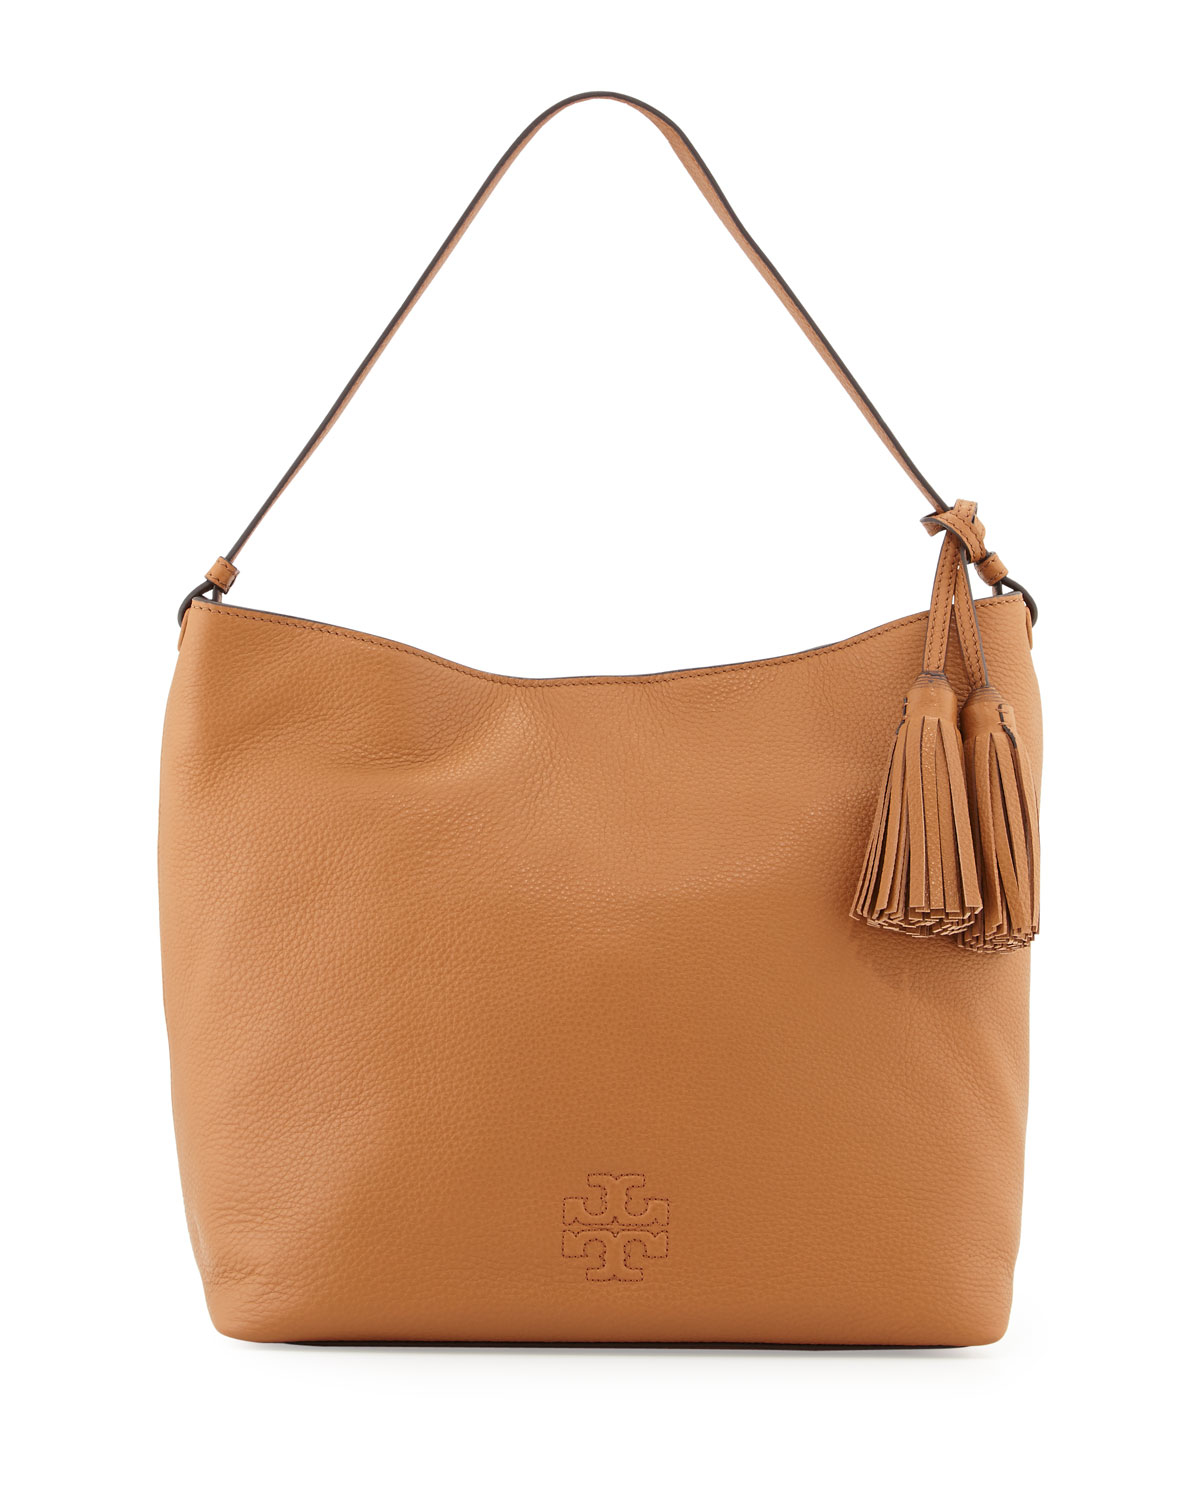 5c2d7cd6a12d0 Lyst - Tory Burch Thea Leather Hobo in Brown